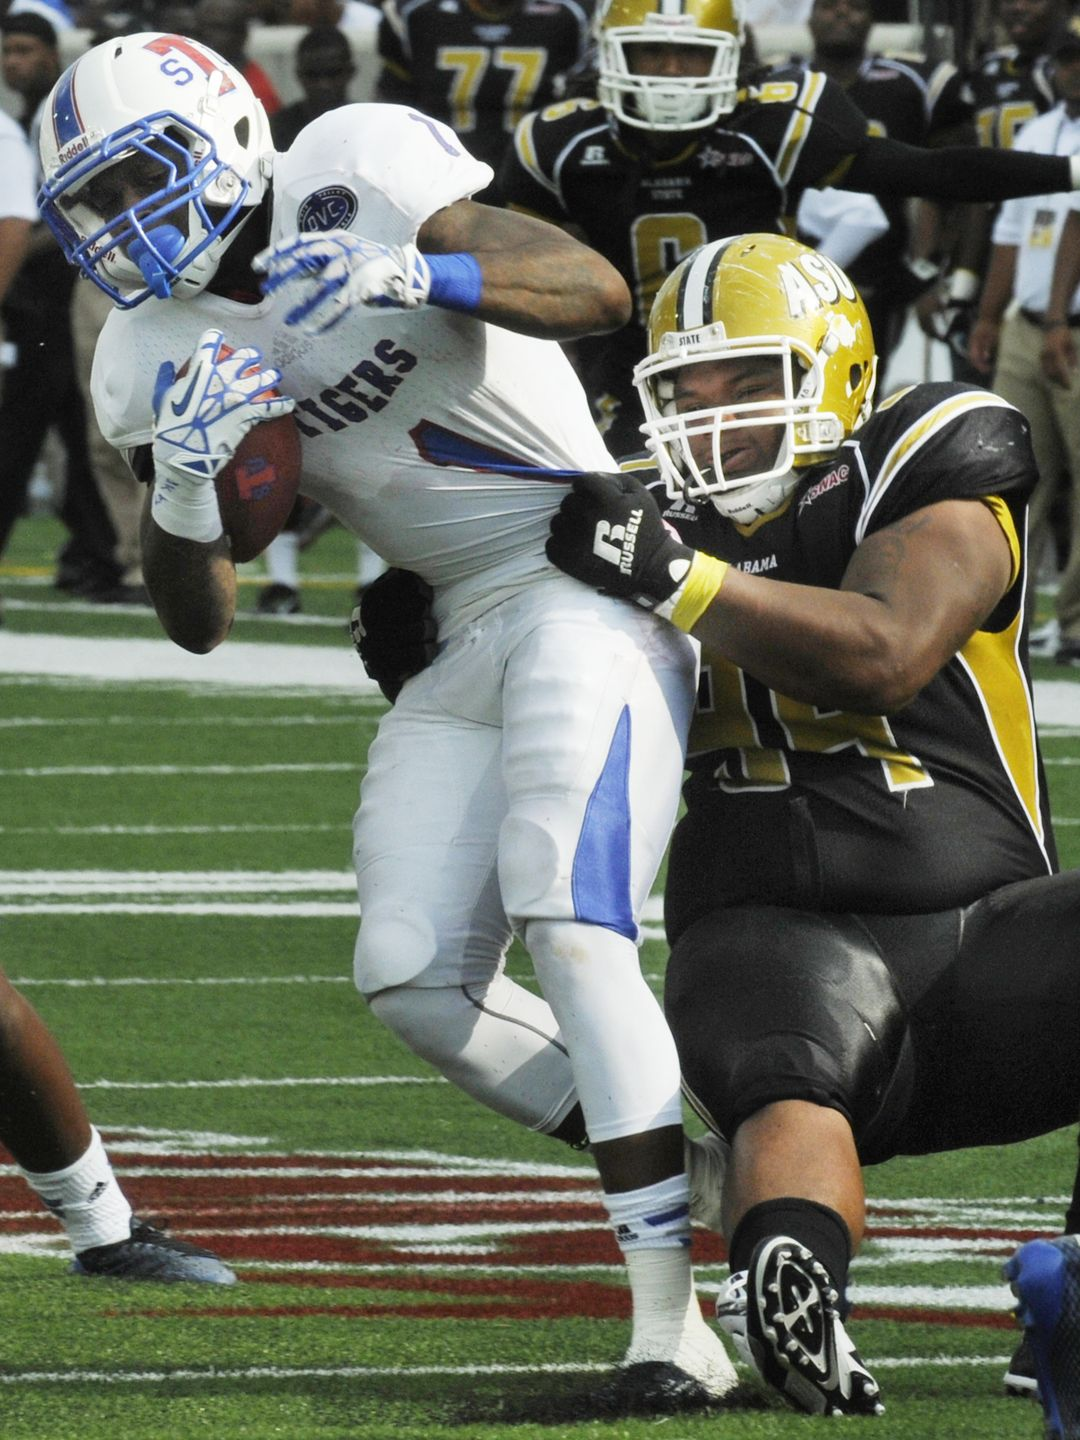 Alabama State University Hornets defeat the Tiger...